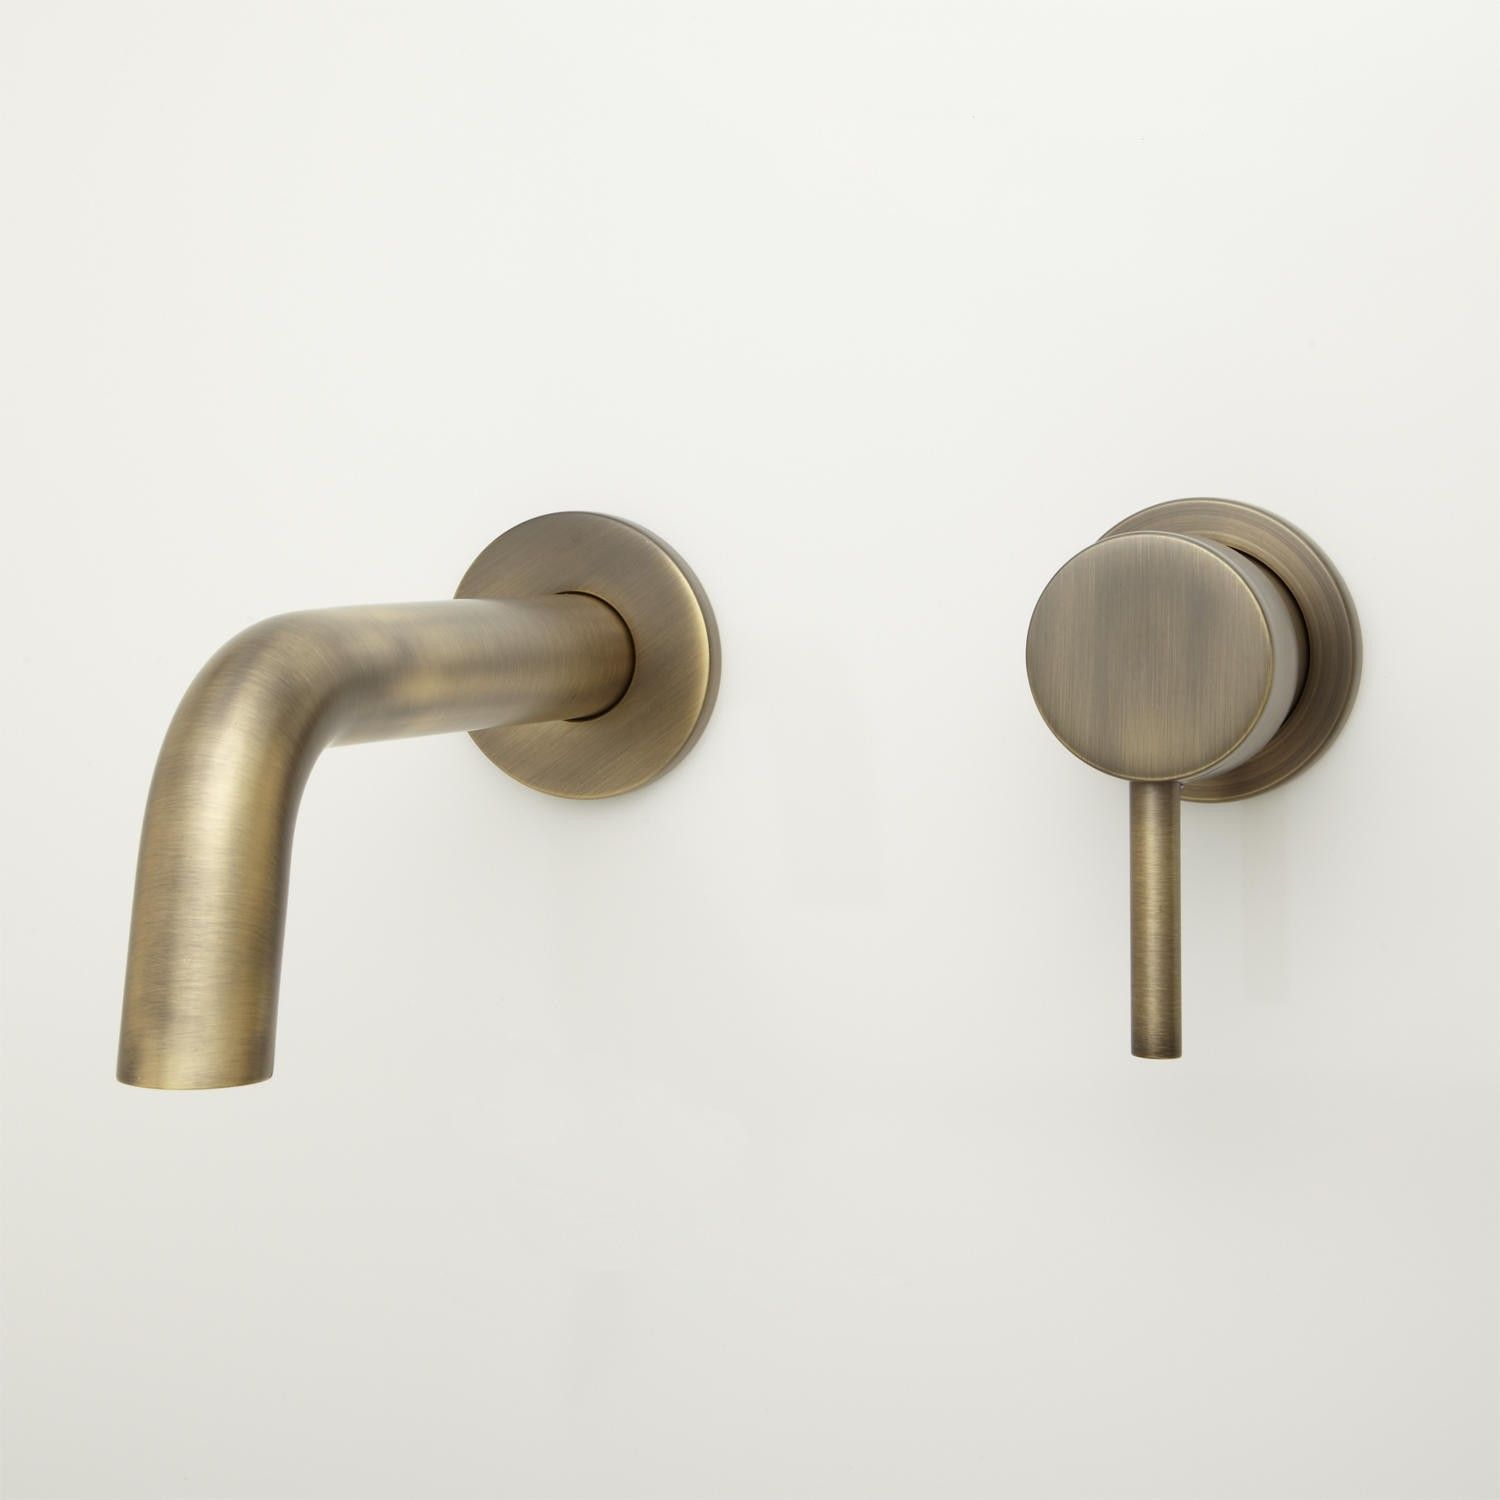 Signiture Hardware - ROTUNDA WALL-MOUNT BATHROOM FAUCET - NO ...